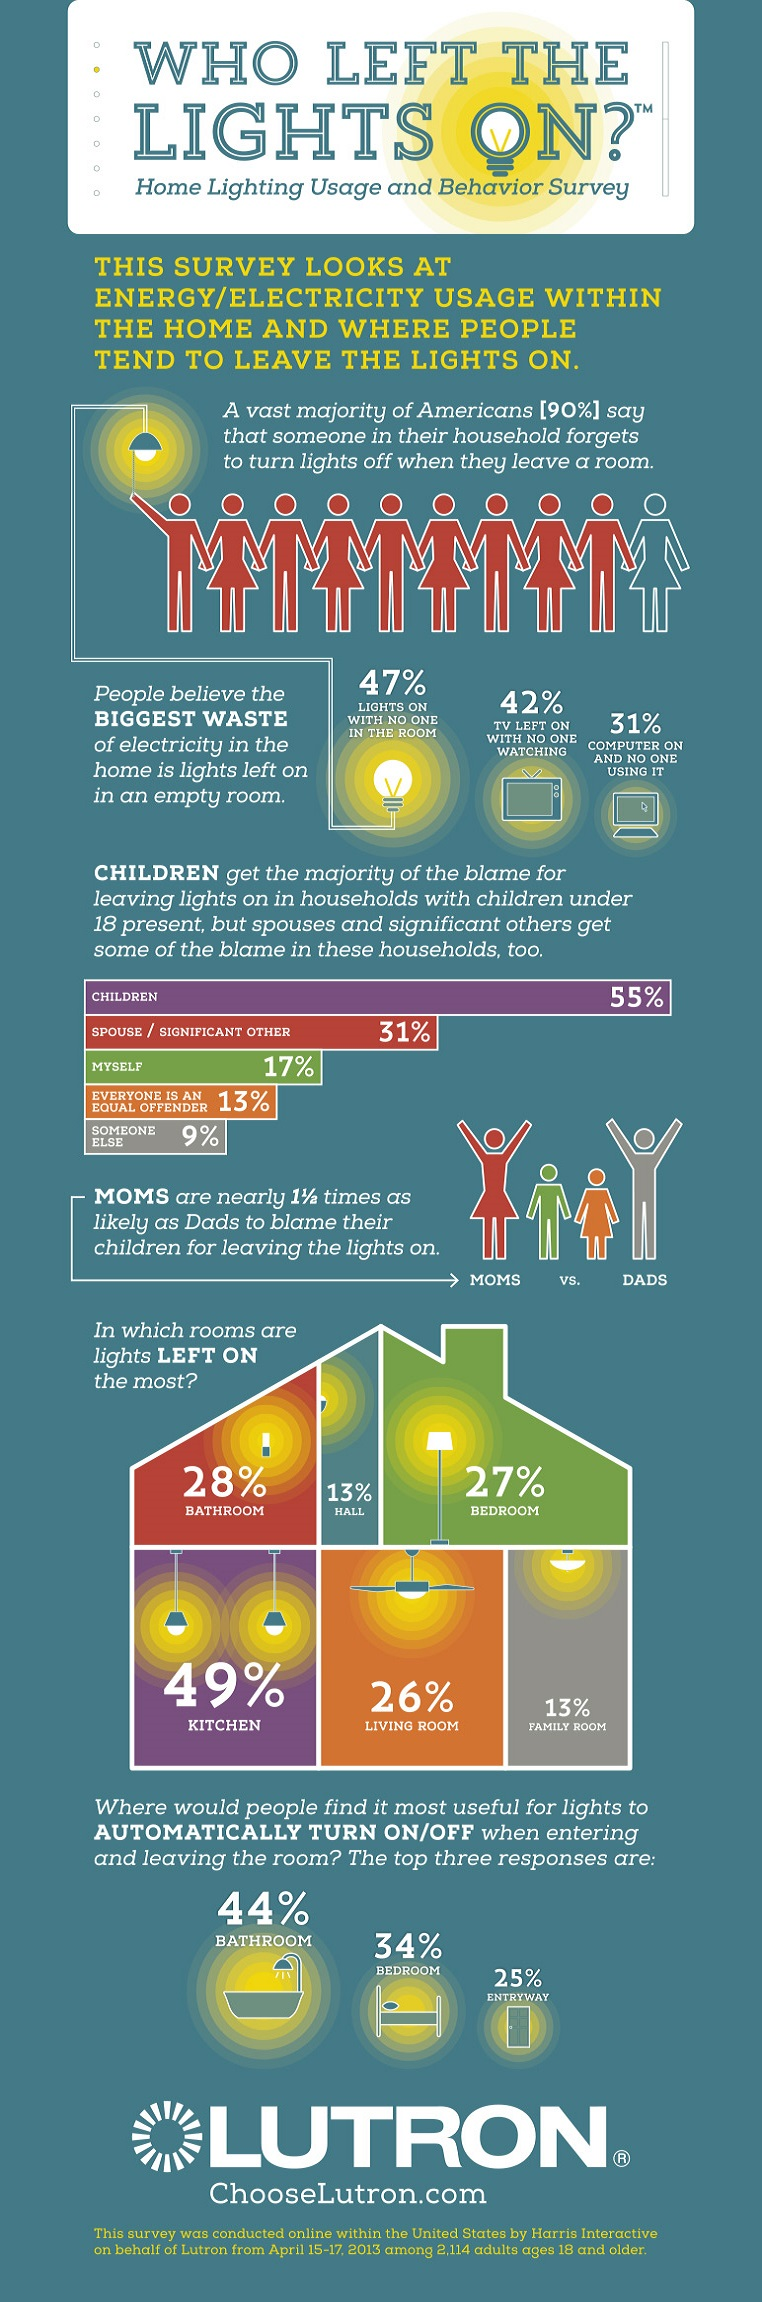 Who Left the Lights On Infographic - Motion sensing light switches ...